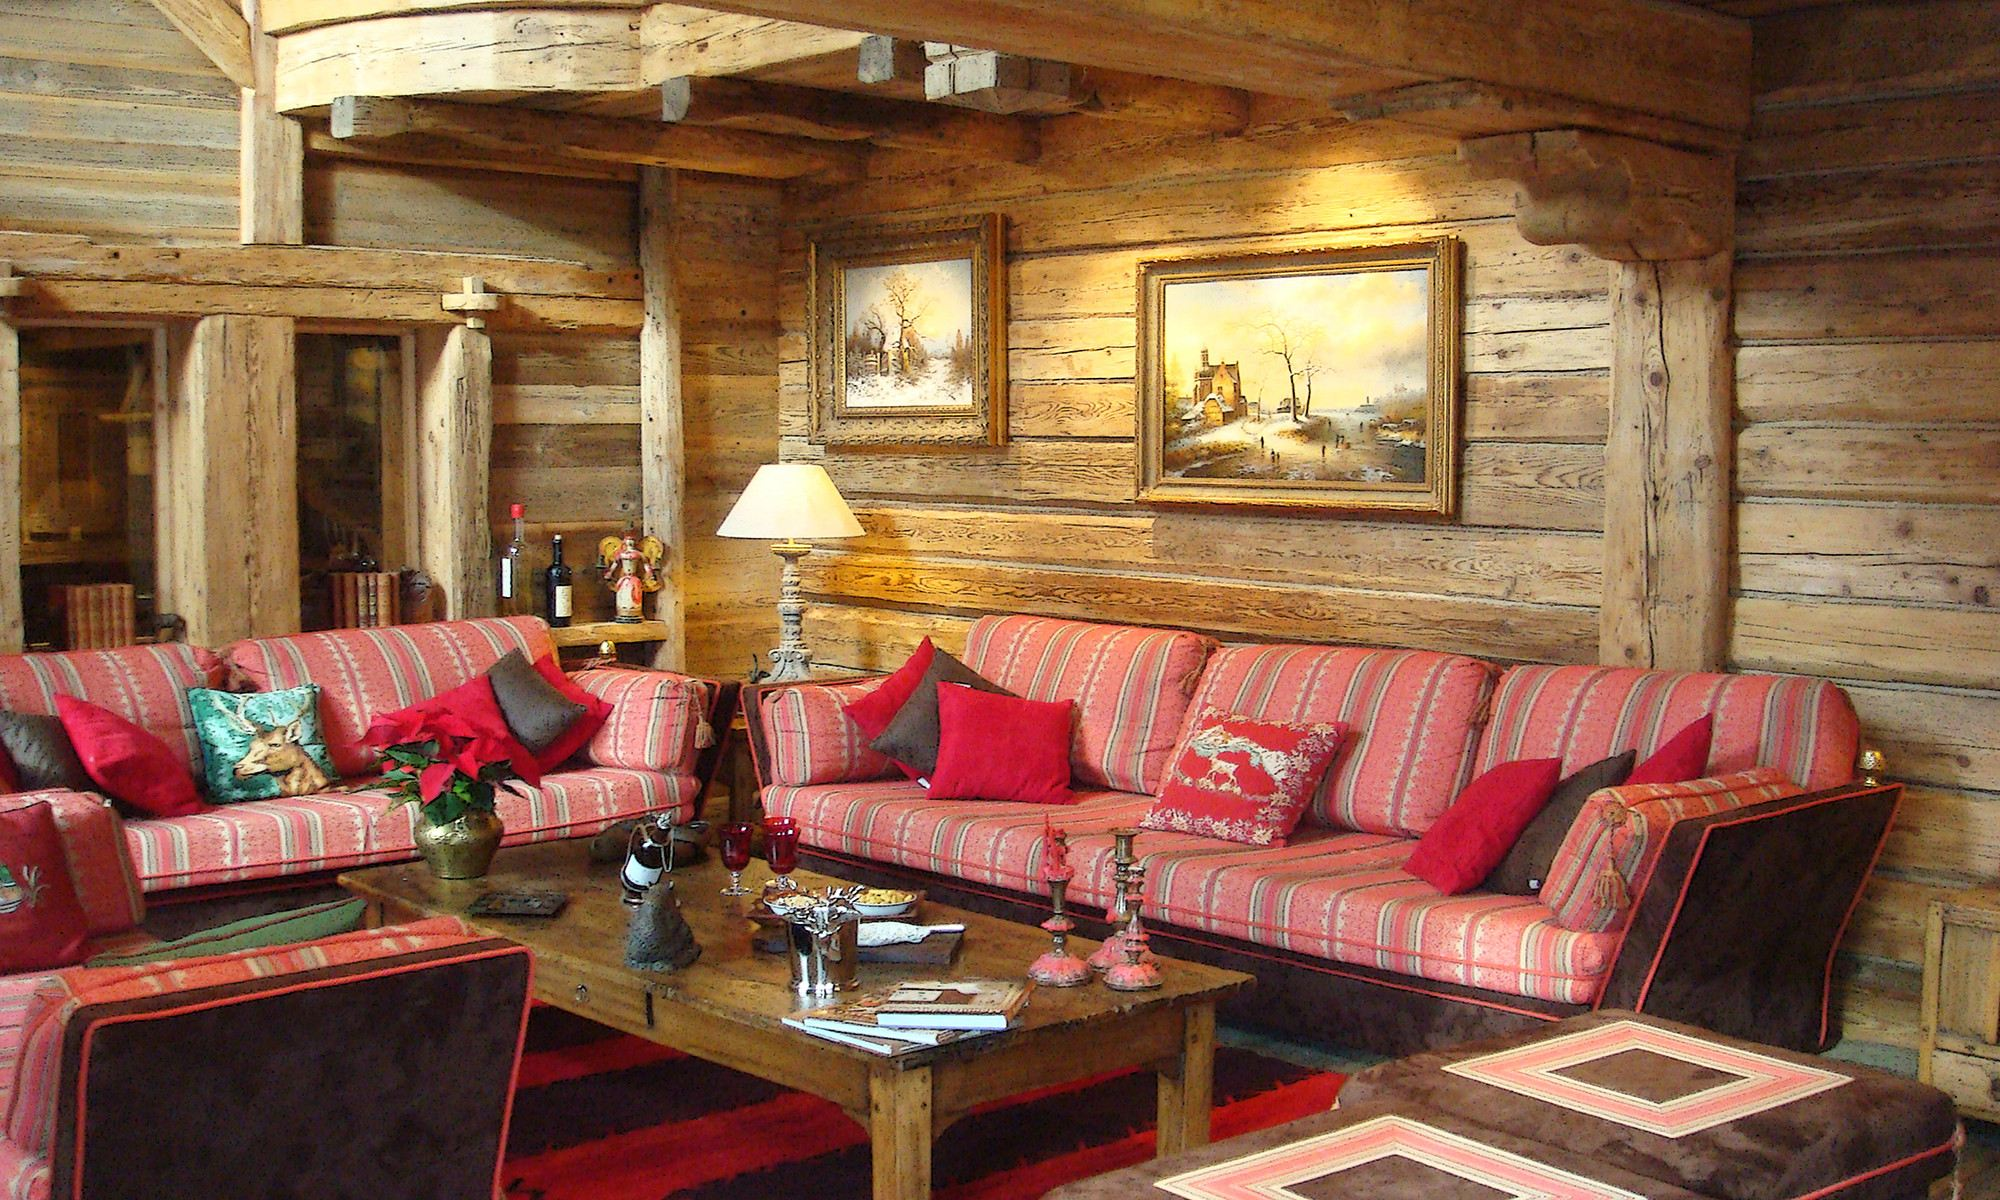 Single Family Home for Sale at Méribel Luxury chalet Rubis Courchevel, Rhone-Alpes, 73120 France